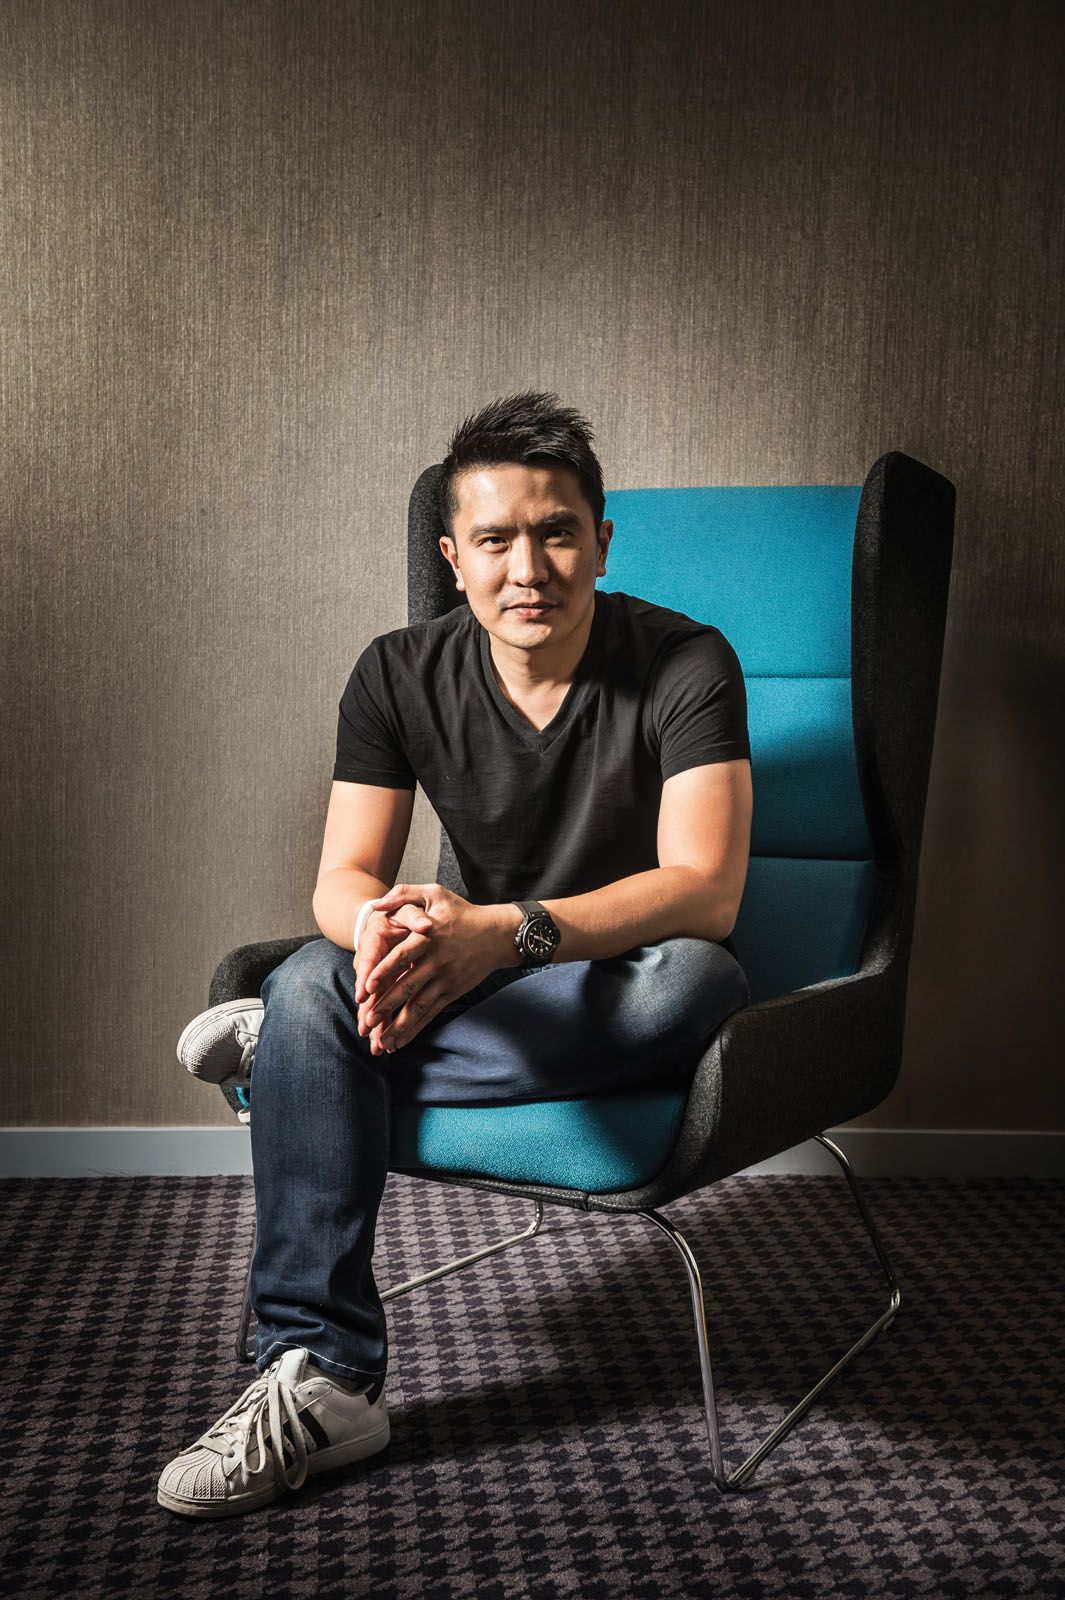 Razer co-founder and CEO Tan Min-Liang has plans to expand the company's ecosystem beyond just gaming equipment (image by Kevin Nixon/Edge Magazine/Future via Getty Images)